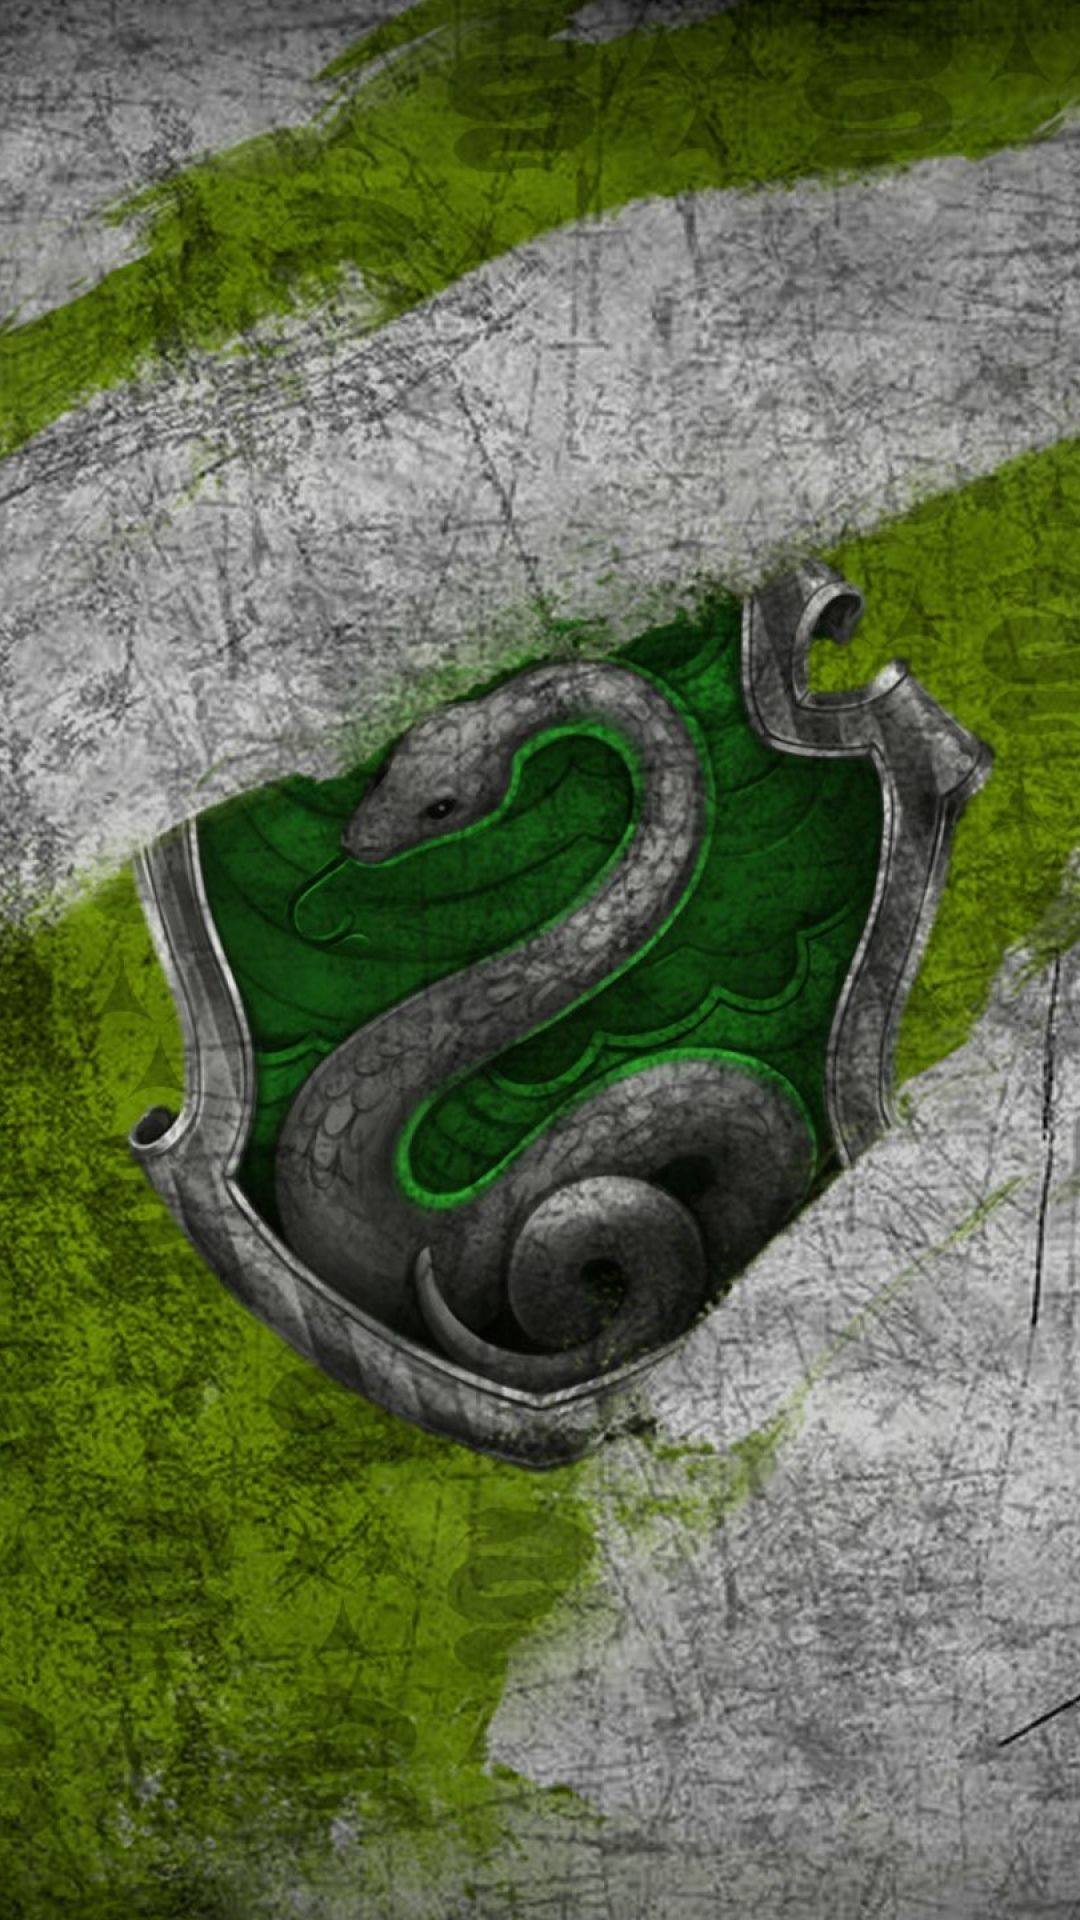 Slytherin 1080 x 1920 Wallpapers available for free